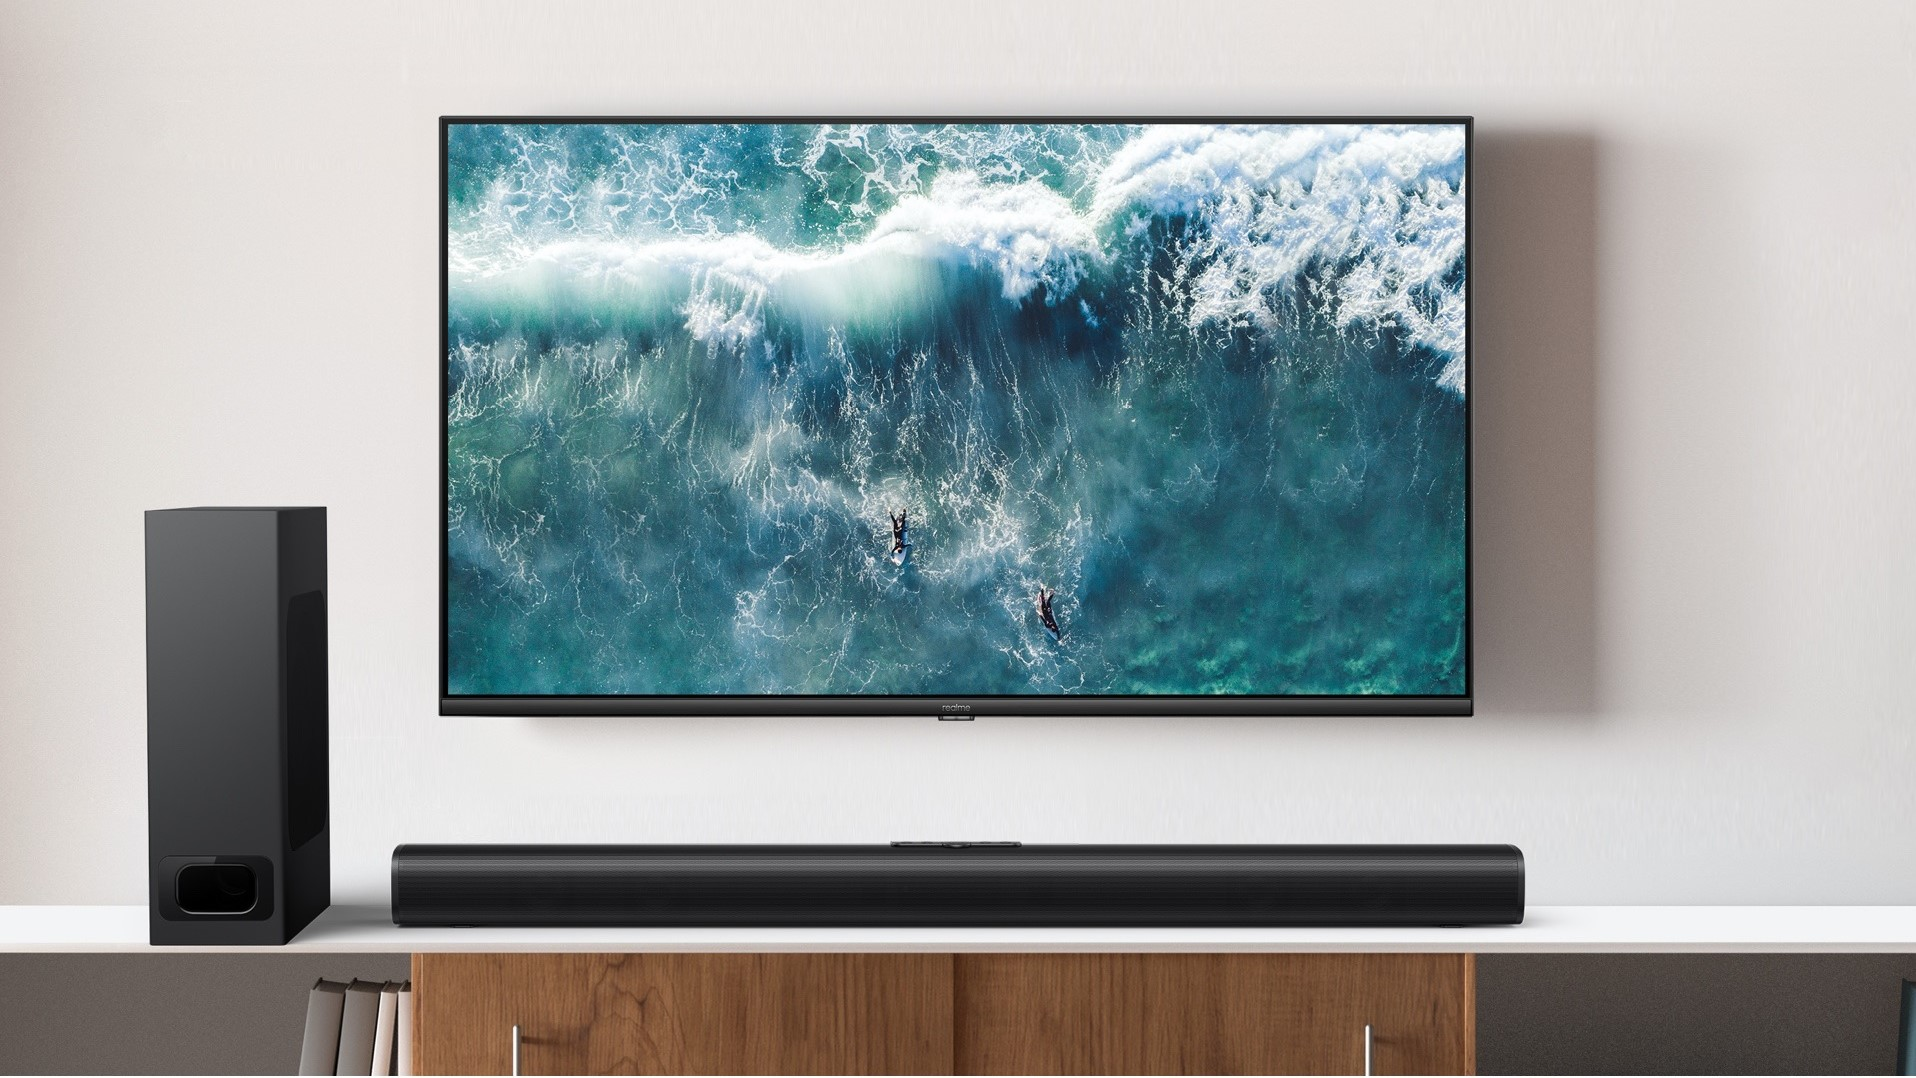 Realme unveils 4K Android TV with new SLED tech alongside 100W soundbar - Android Police